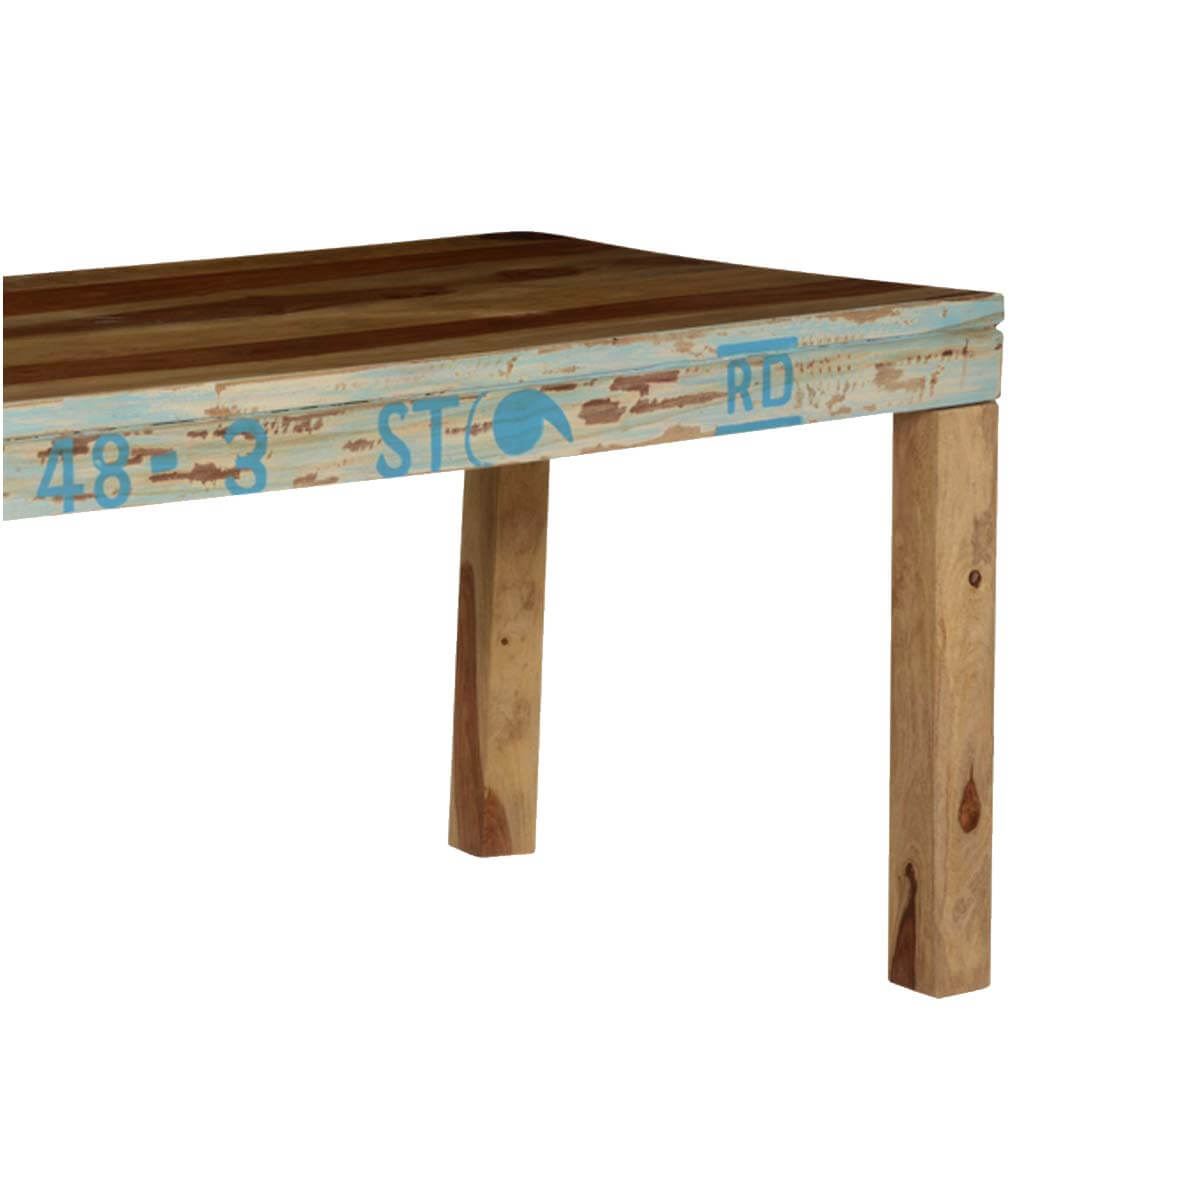 Natural Rustic Solid Wood Rectangular Dining Table : 74355 from www.sierralivingconcepts.com size 1200 x 1200 jpeg 70kB